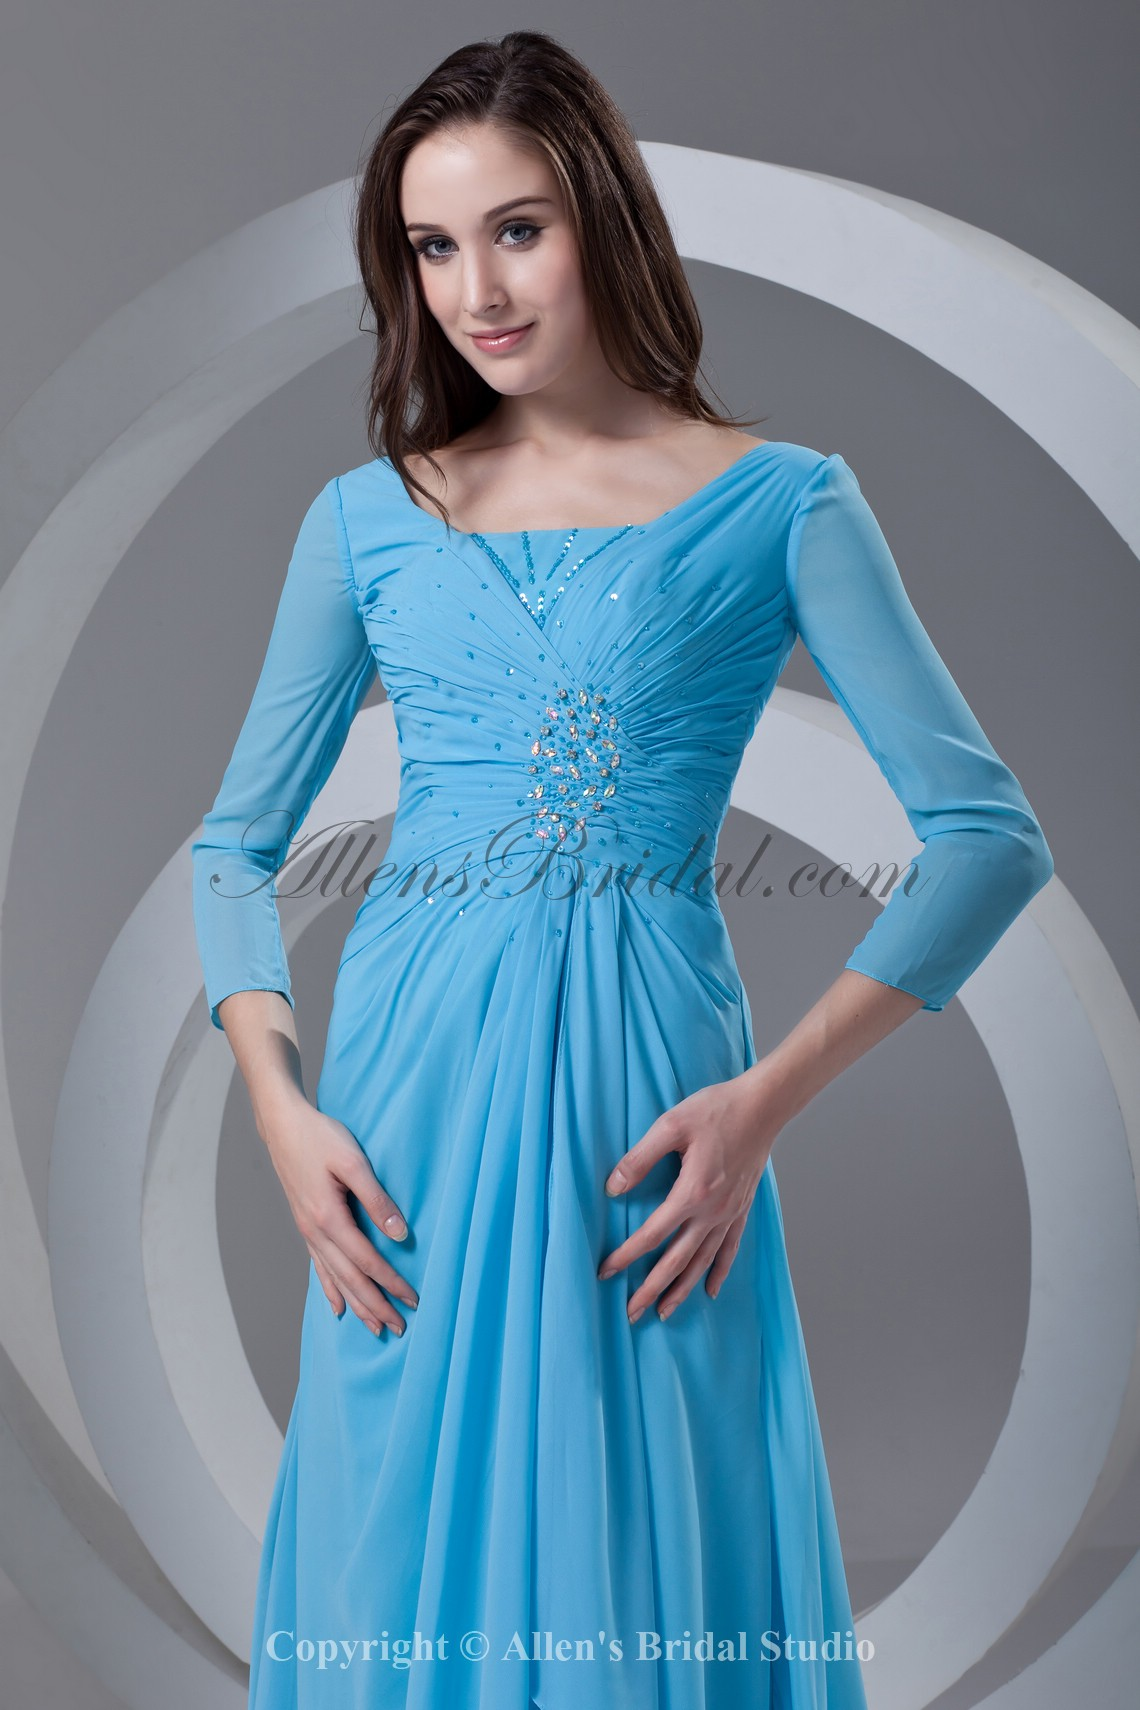 /337-2692/chiffon-square-neckline-sweep-train-column-prom-dress-with-three-quarter-sleeve-and-gathered-ruched.jpg